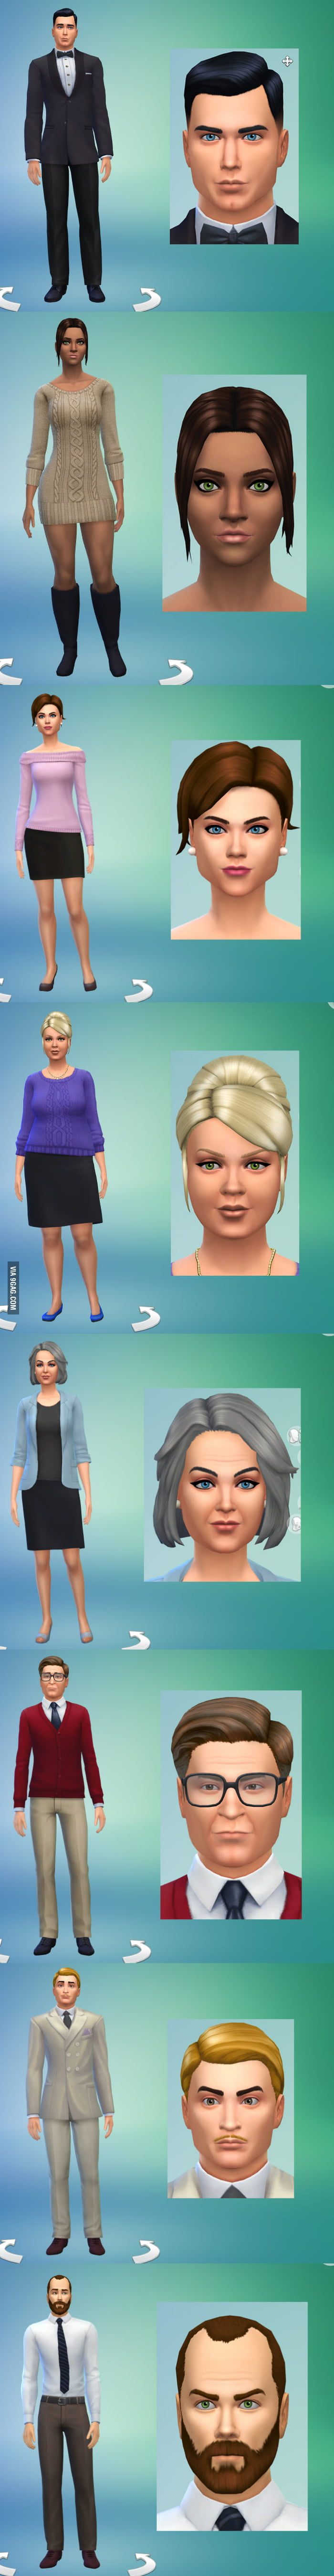 archer cast done in the sims 4 character creator 9gag